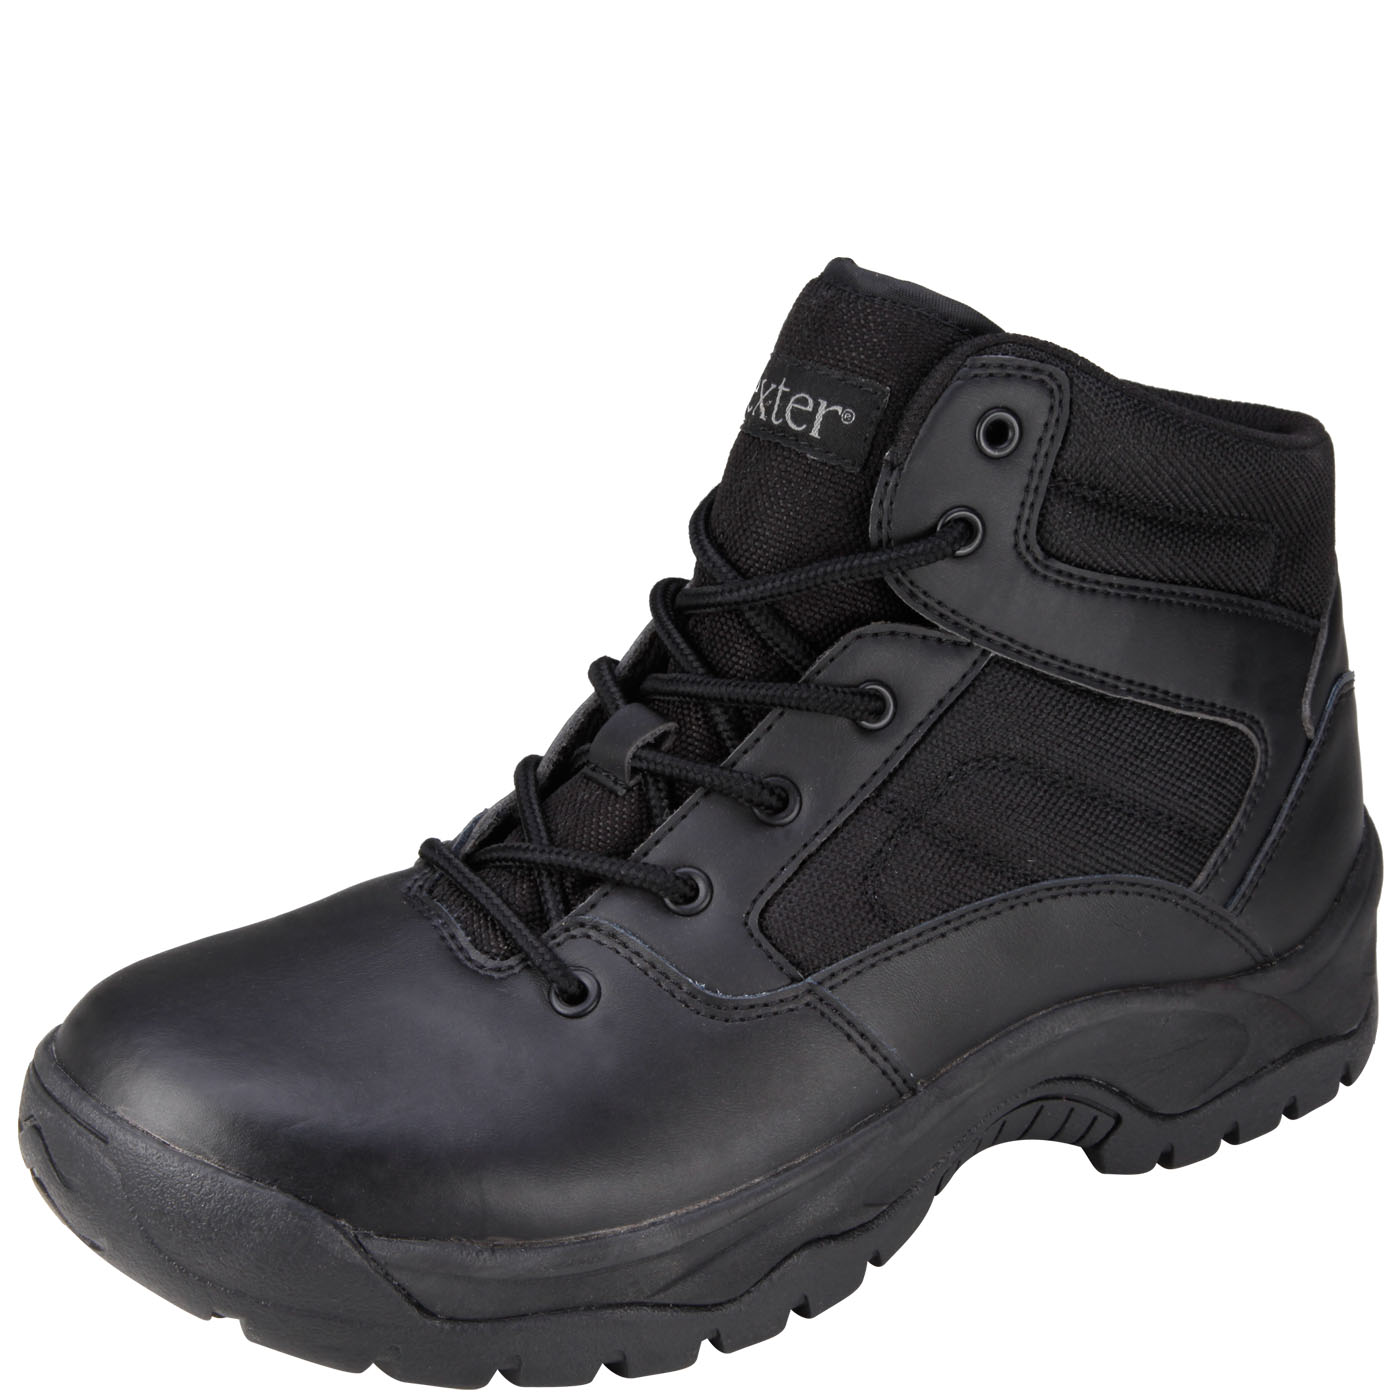 Black Work Boots For Men 7pka3dO8